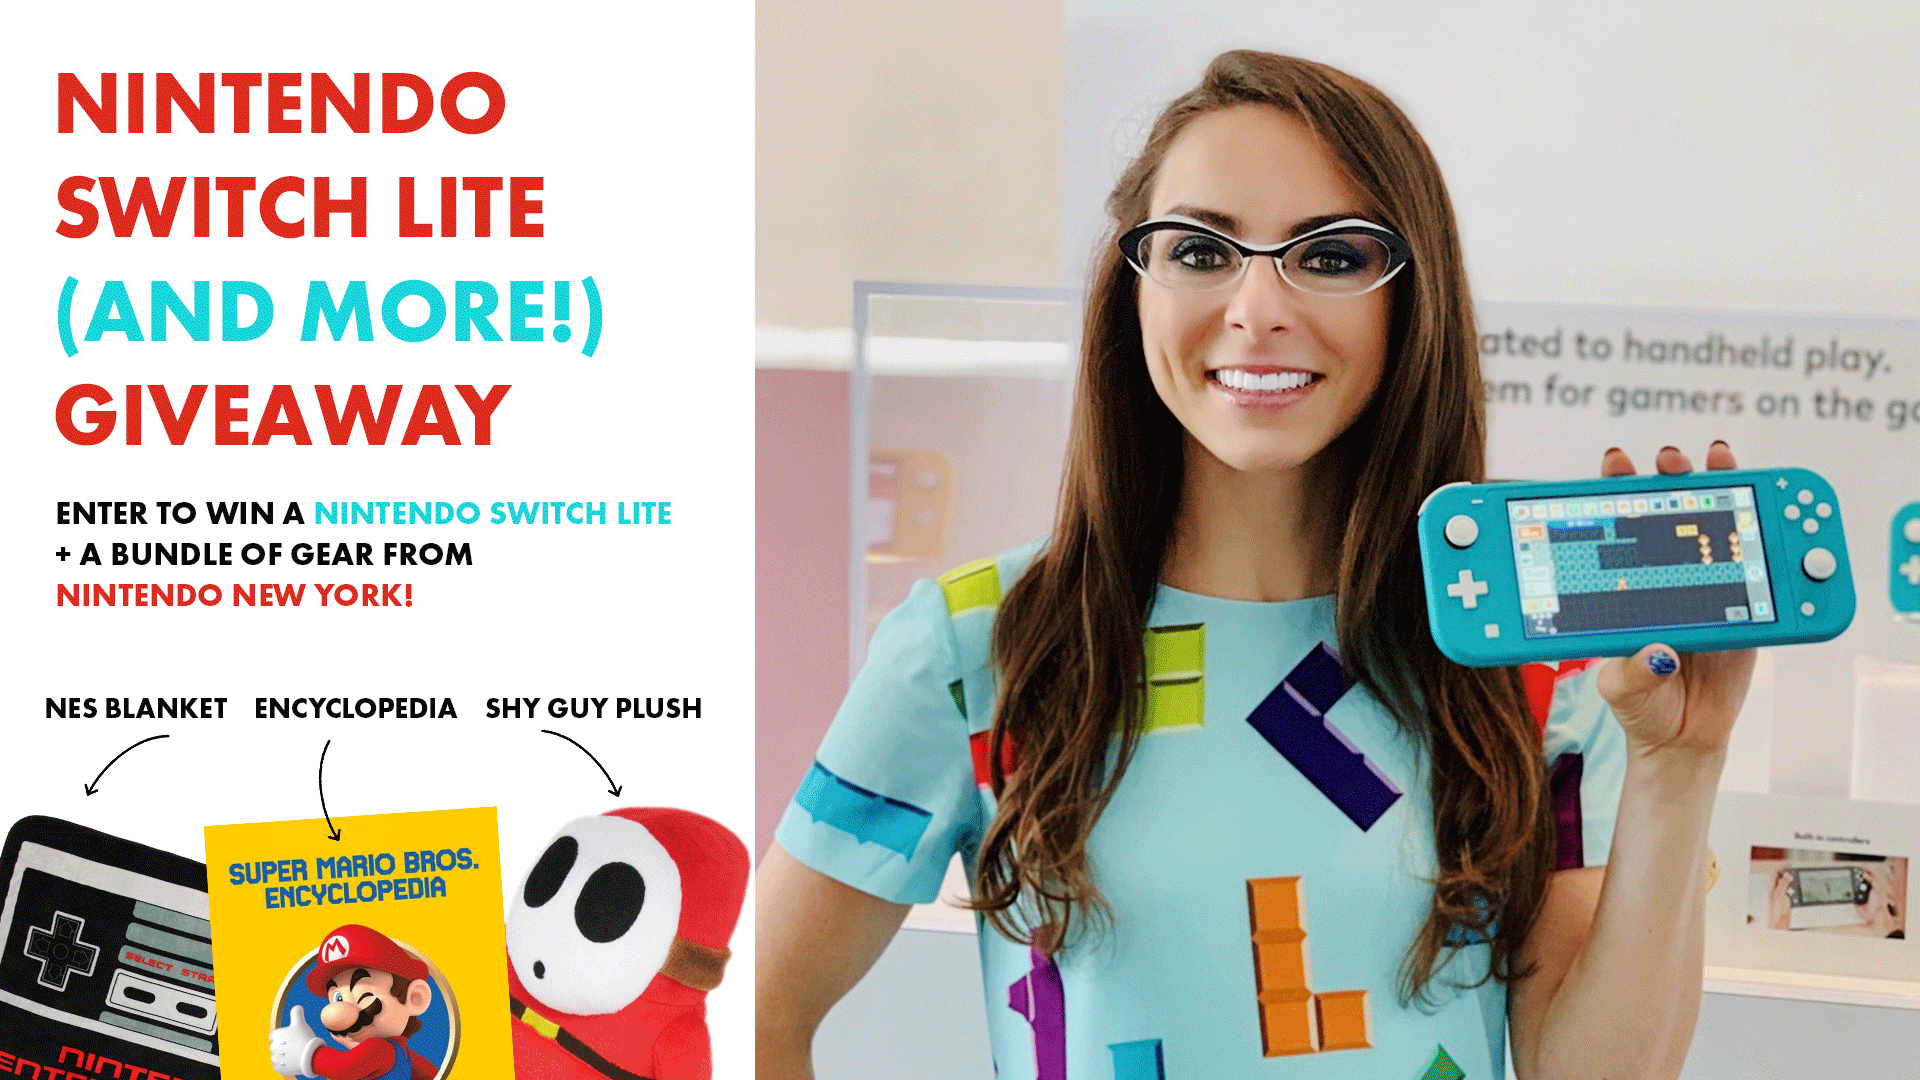 Nintendo Switch Lite - Ultimate Bundle Giveaway! Giveaway Image